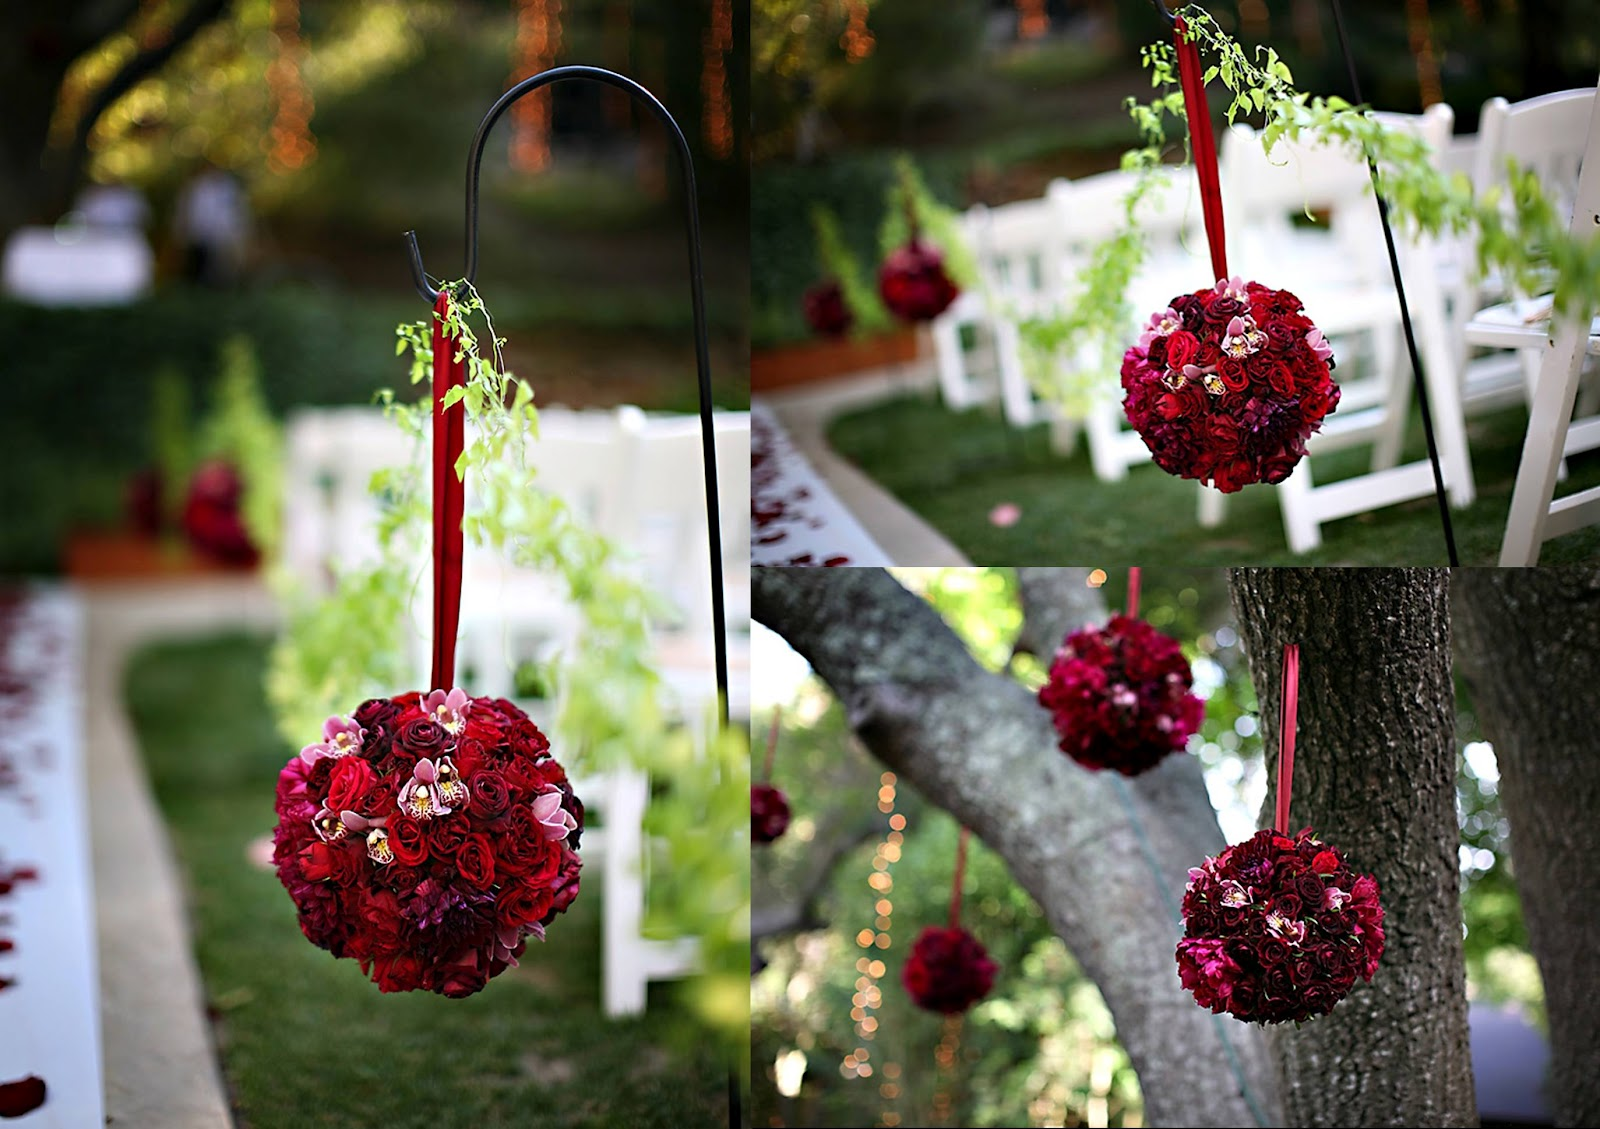 RED + PURPLE WEDDING INSPIRATION - Asian Wedding Ideas